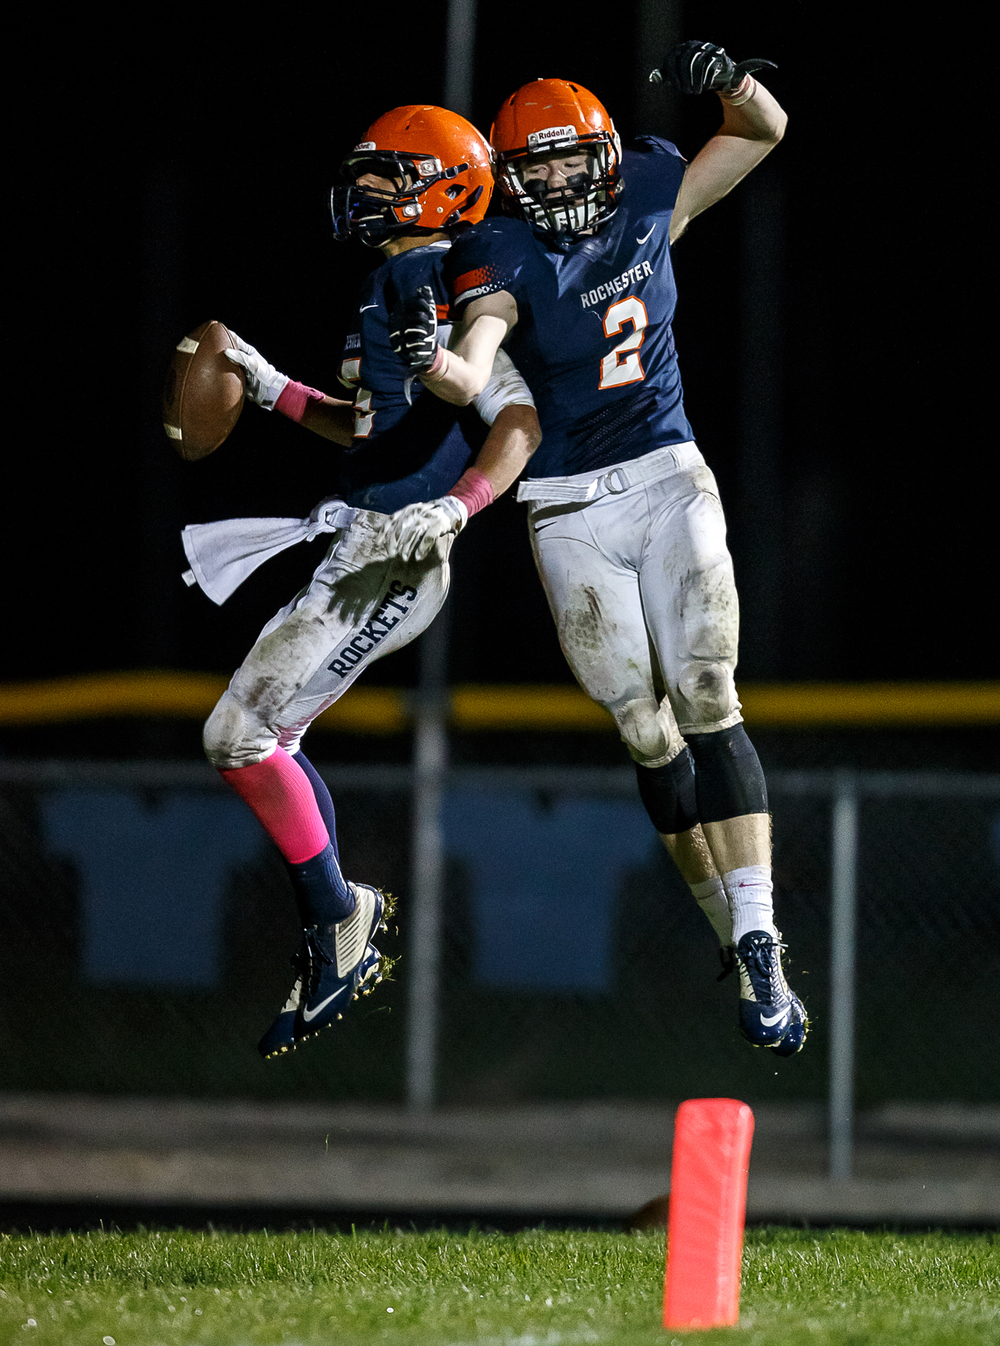 Rochester's Jeremy Bivens (15) celebrates his 73-yard touchdown catch with Rochester's Eric Yakle (2) against Jacksonville during the second half at Rocket Booster Field, Friday, Oct. 10, 2014, in Rochester, Ill. Justin L. Fowler/The State Journal-Register